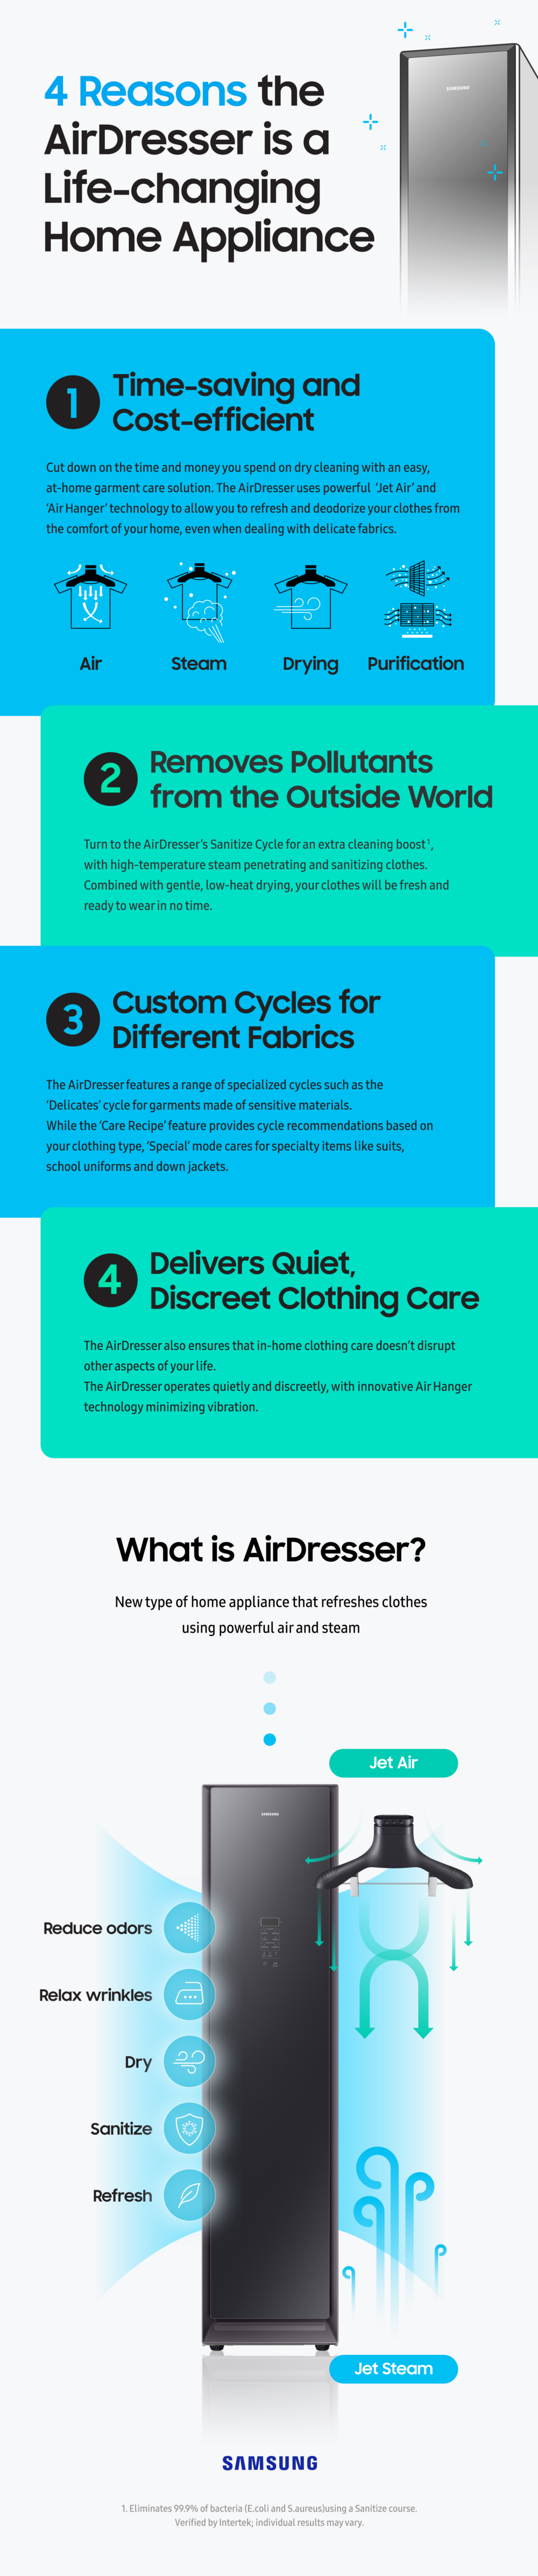 [Clothing Care Reimagined] ③ [Infographic] 4 Reasons Samsung's AirDresser is a Life-changing Home Appliance - Image 1